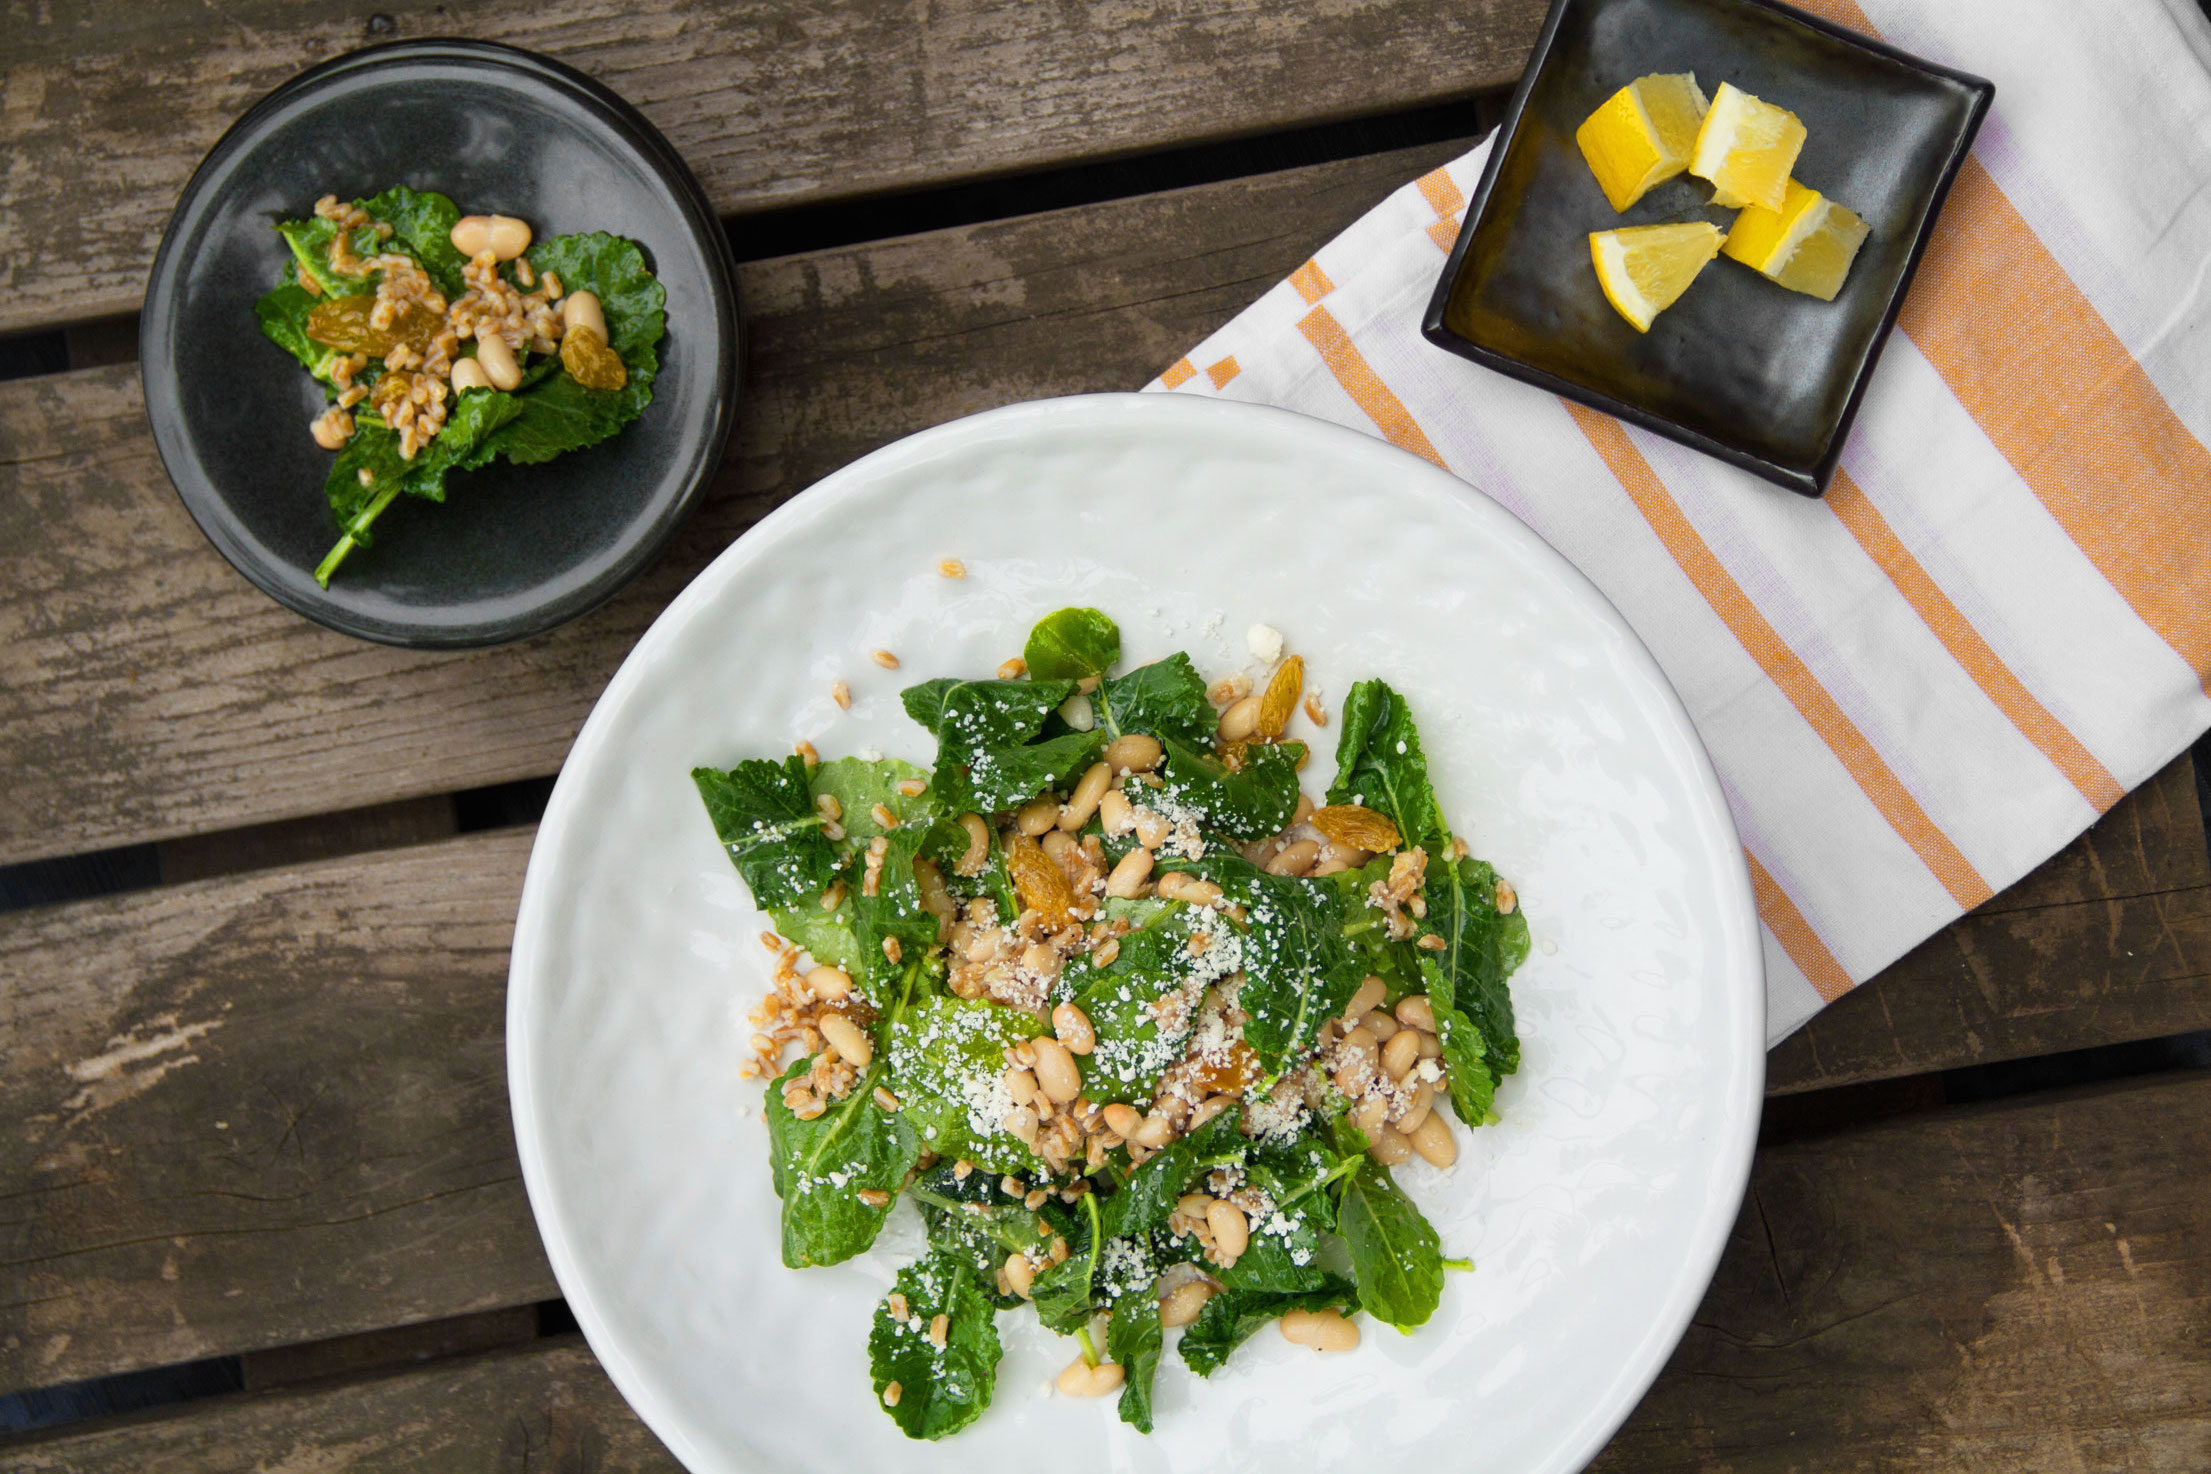 Baby Kale Salad with White Beans, Farro, and Golden Raisins